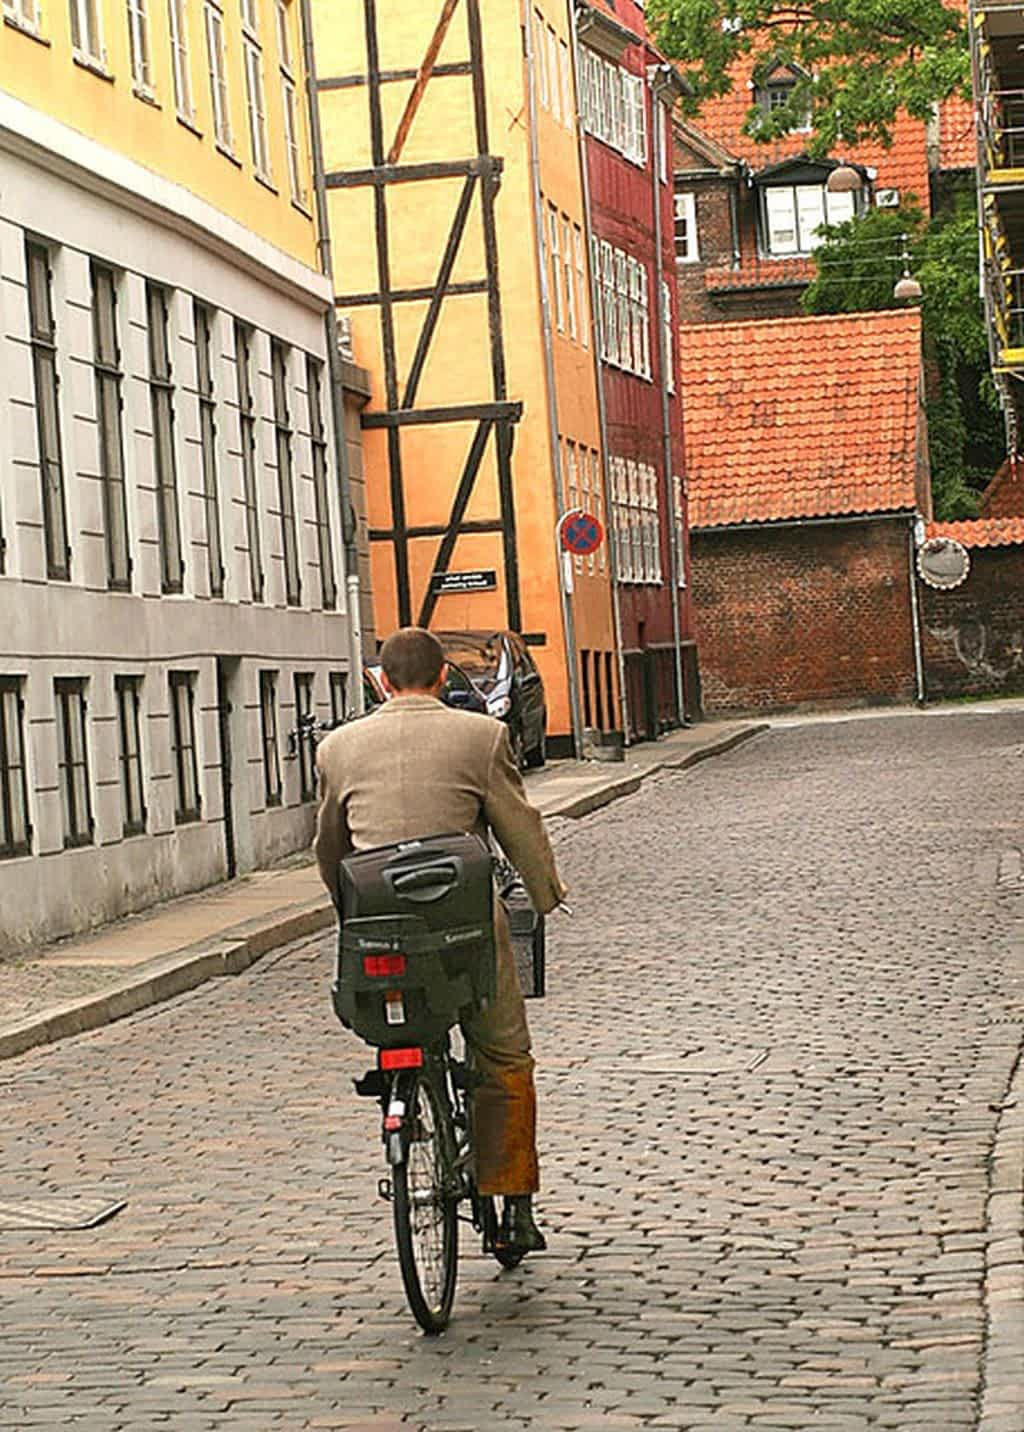 bike cobblestone street passing Swedish buildings